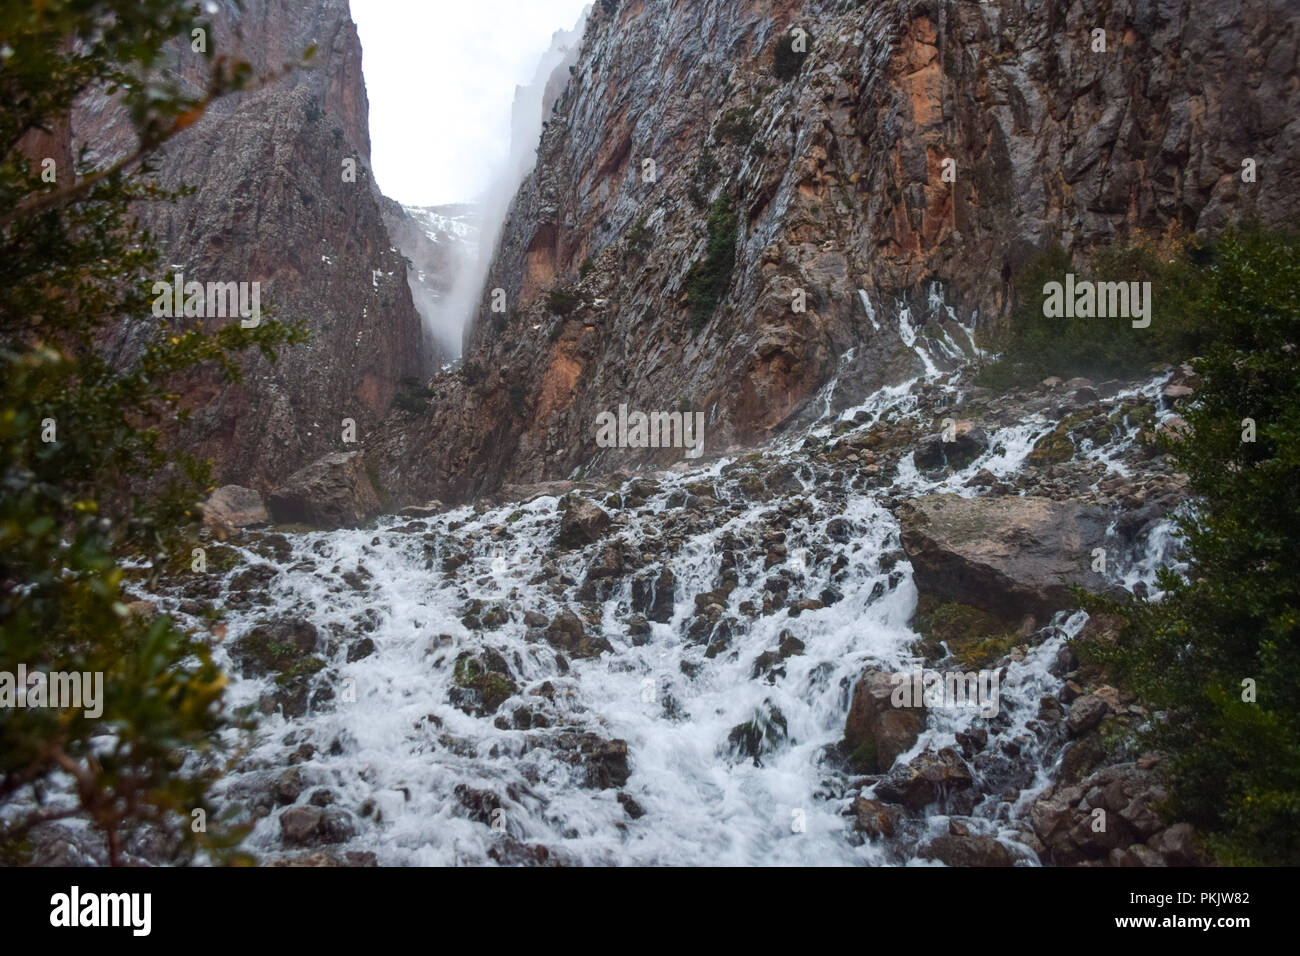 Sources of River Ahanssal in Morocco - Stock Image